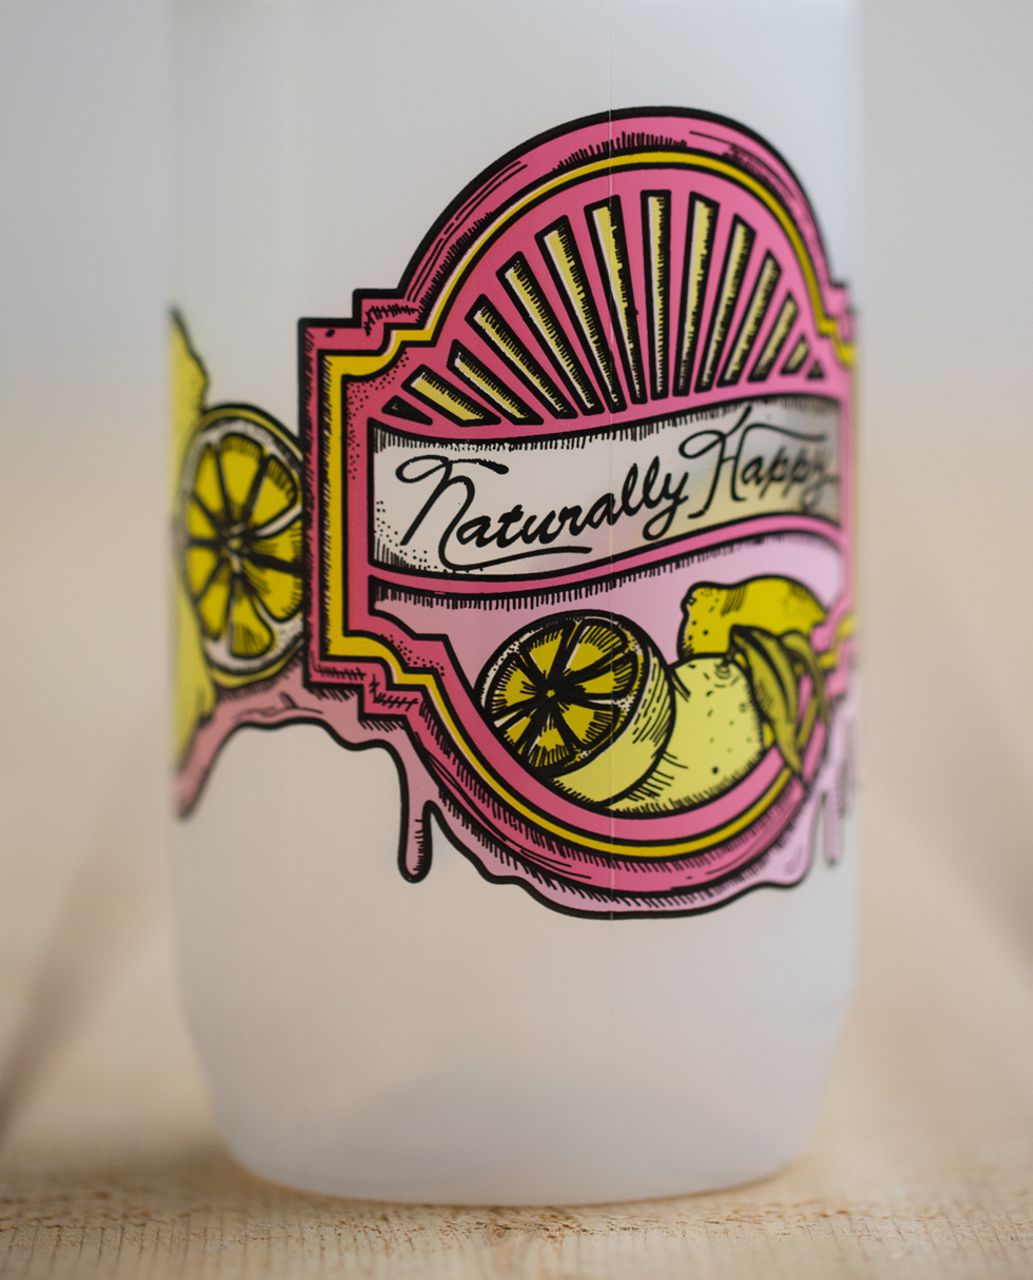 Lululemon Purist Cycling Water Bottle - Naturally Happy Rose Bud Guava Lava